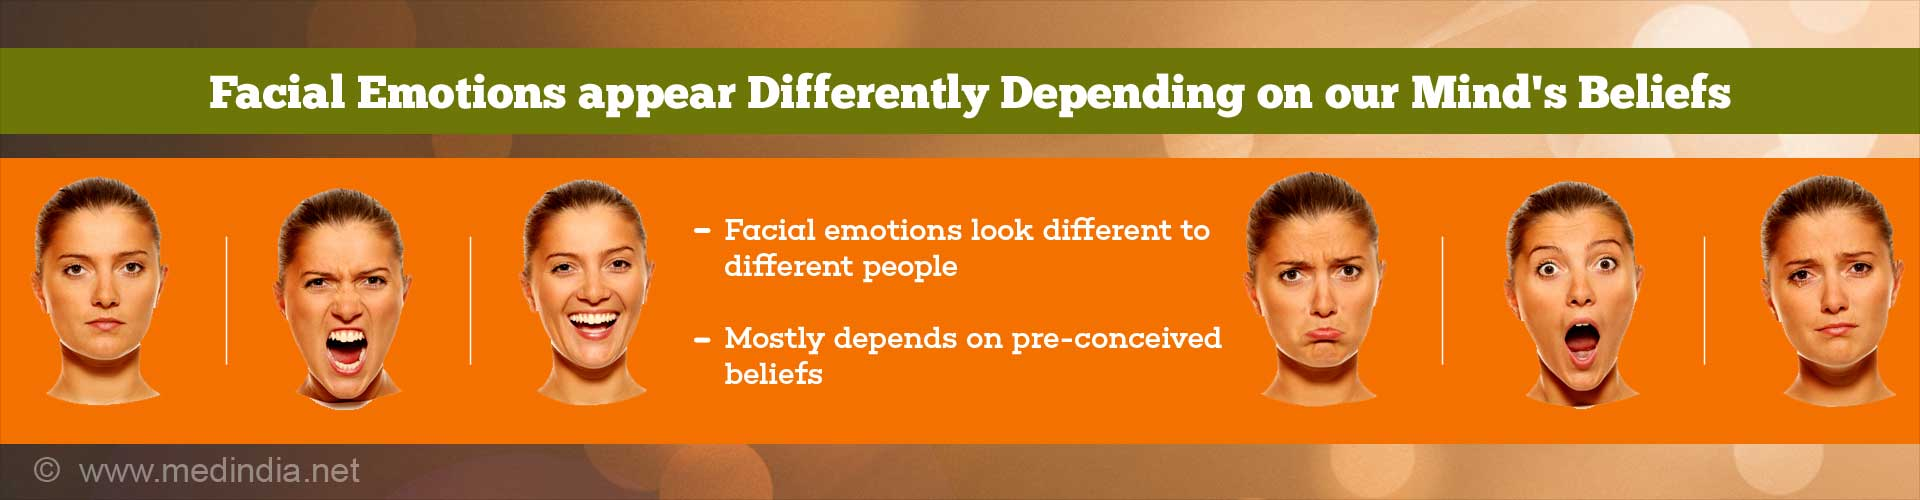 Our Mind Controls How We Interpret Emotions on Others Faces